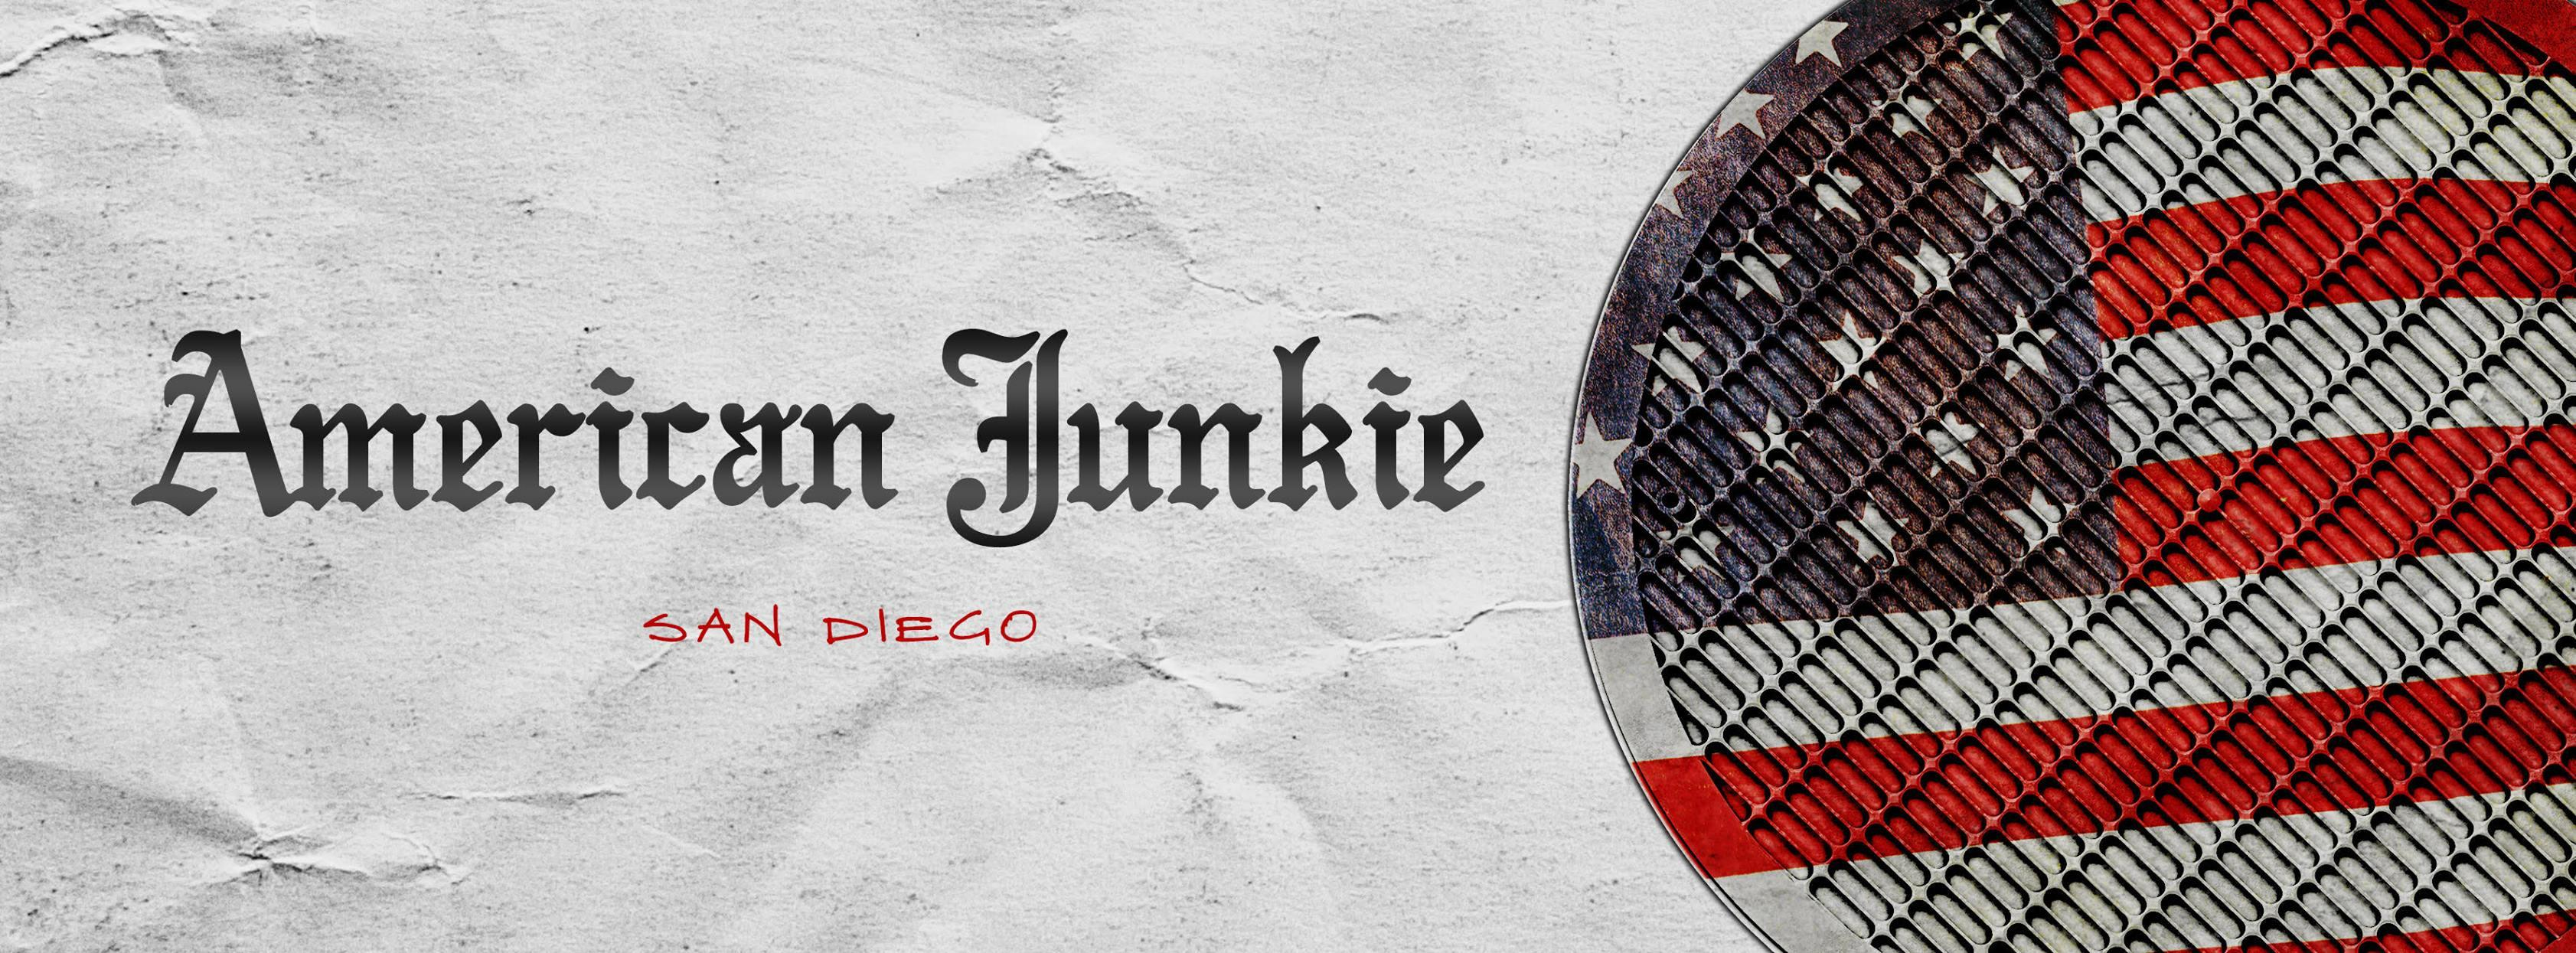 $5 All you can Eat Taco Tuesday at American Junkie San Diego. $5 All you can Eat Taco Tuesday at American Junkie San Diego